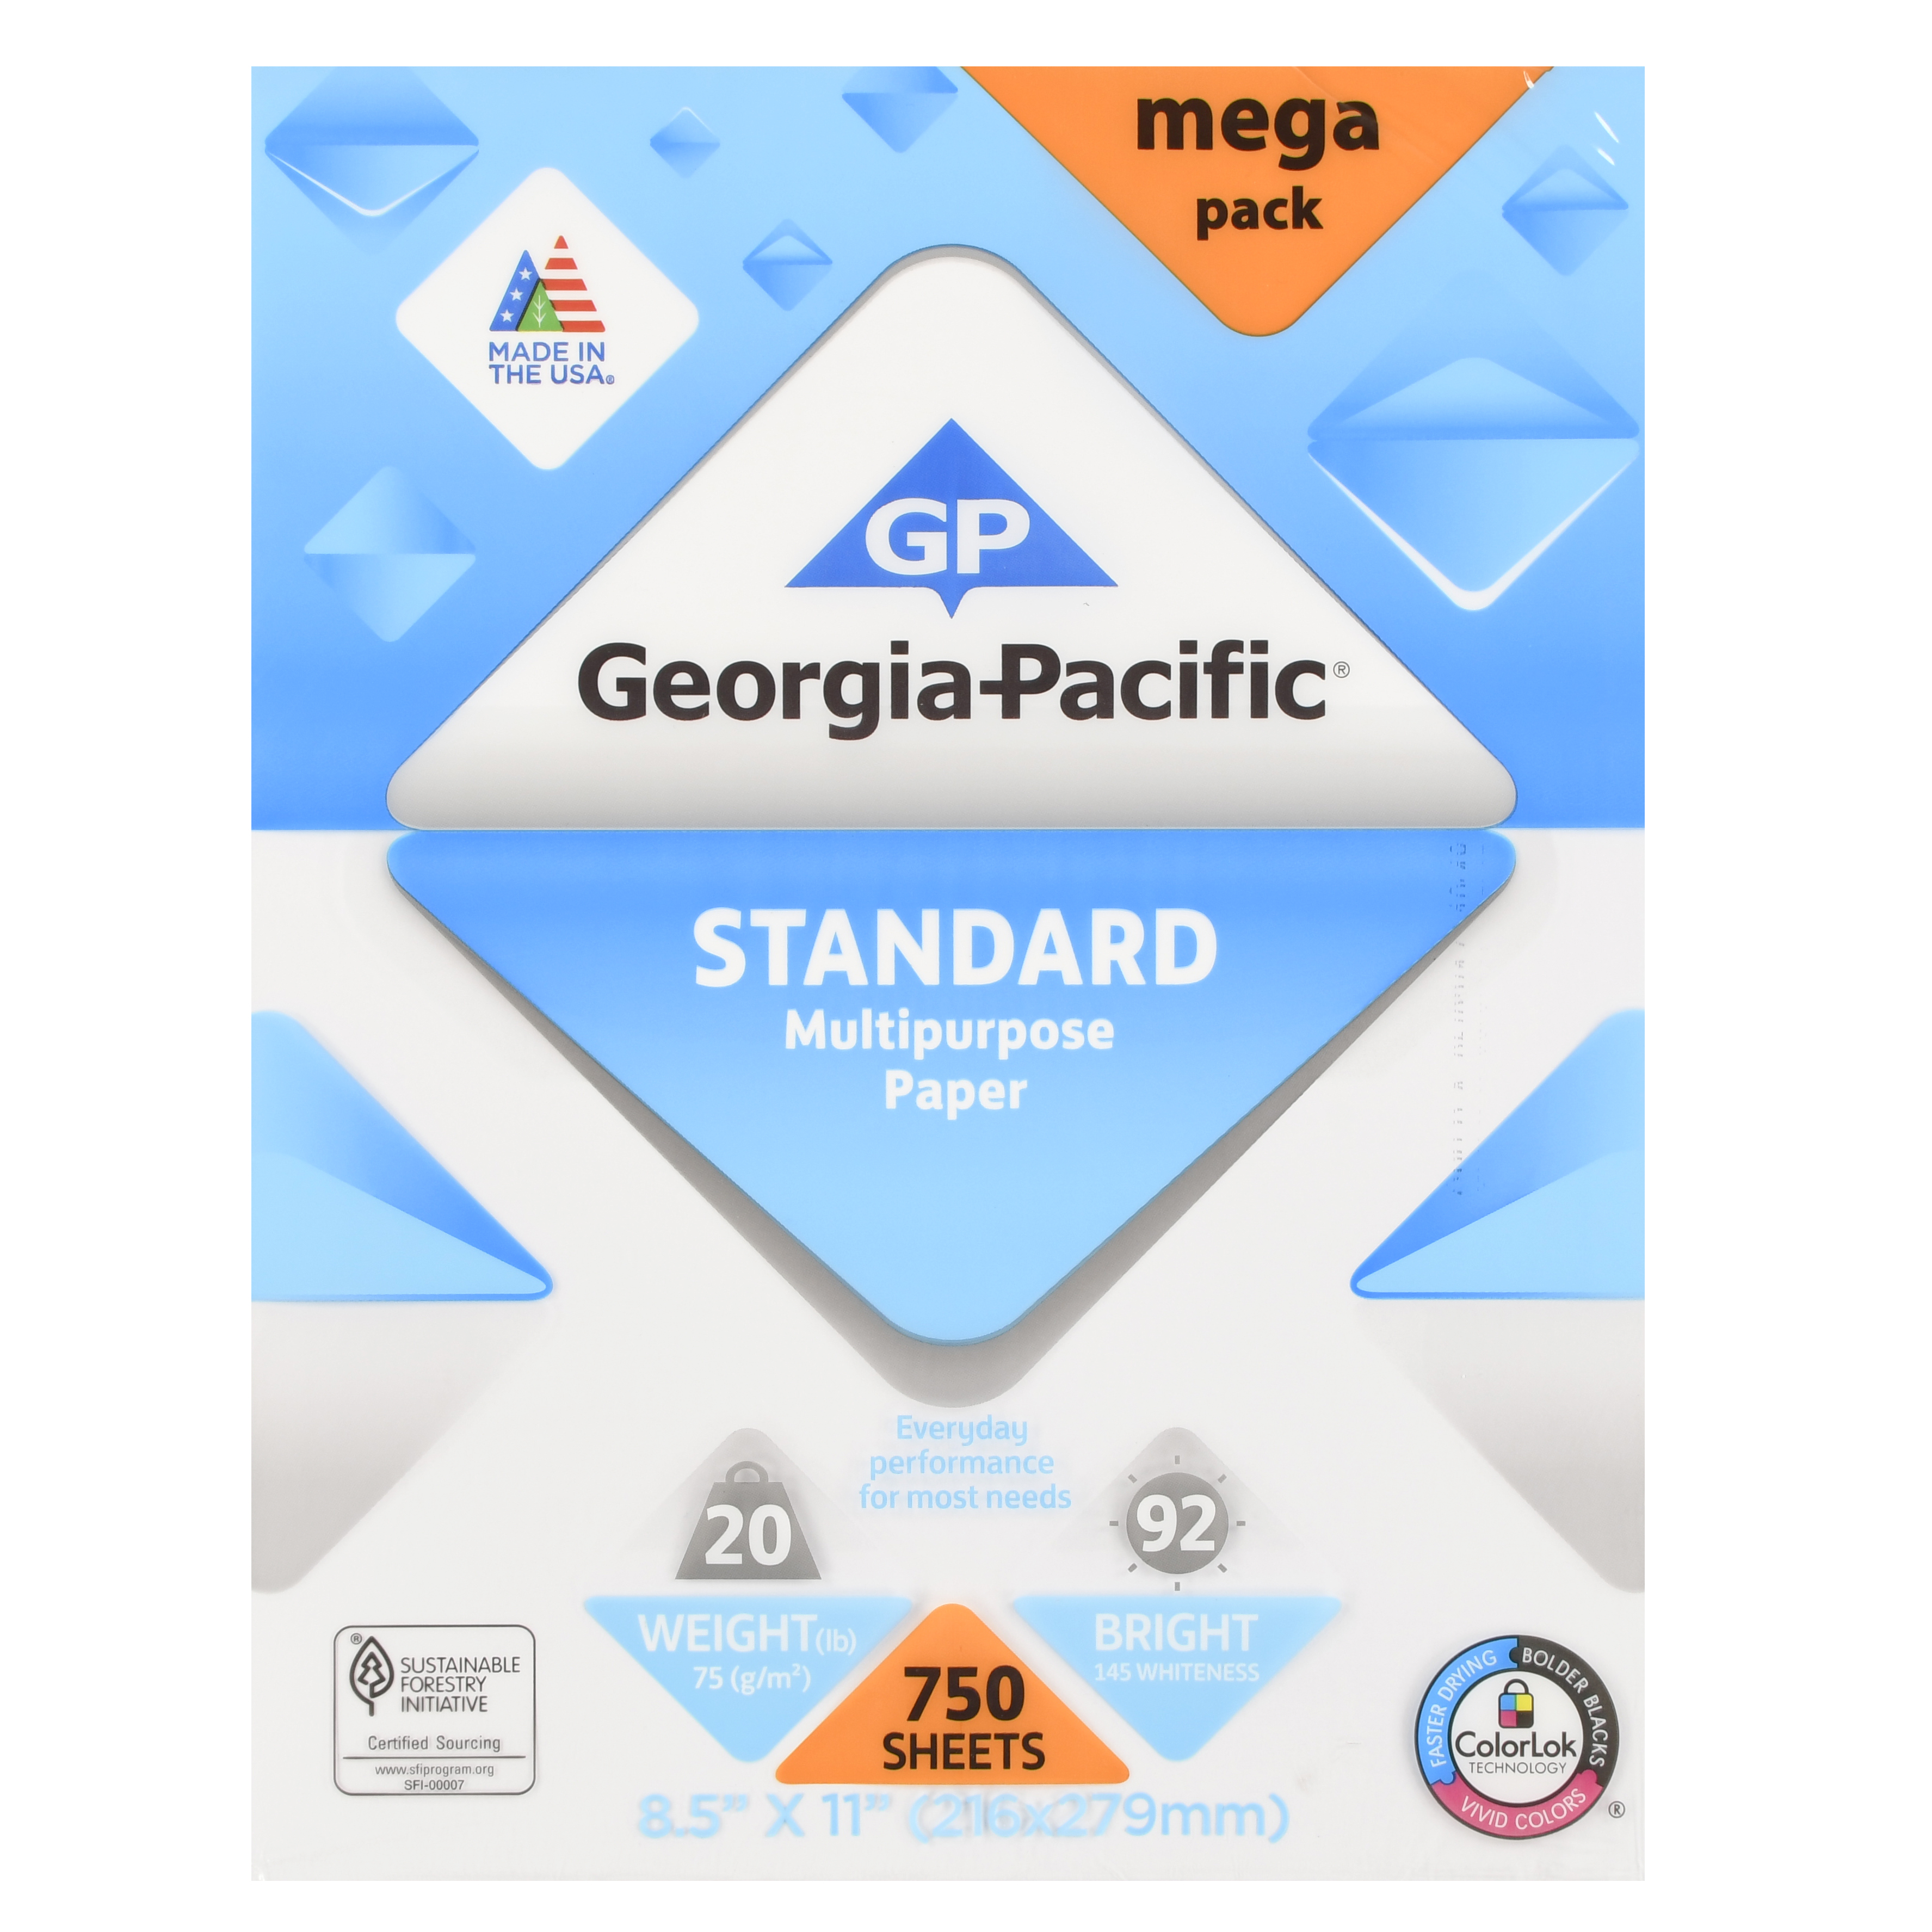 "Georgia-Pacific Standard Multipurpose Paper, 8.5"" x 11"", 20 lb, 92 Brightness, 750 Sheets"